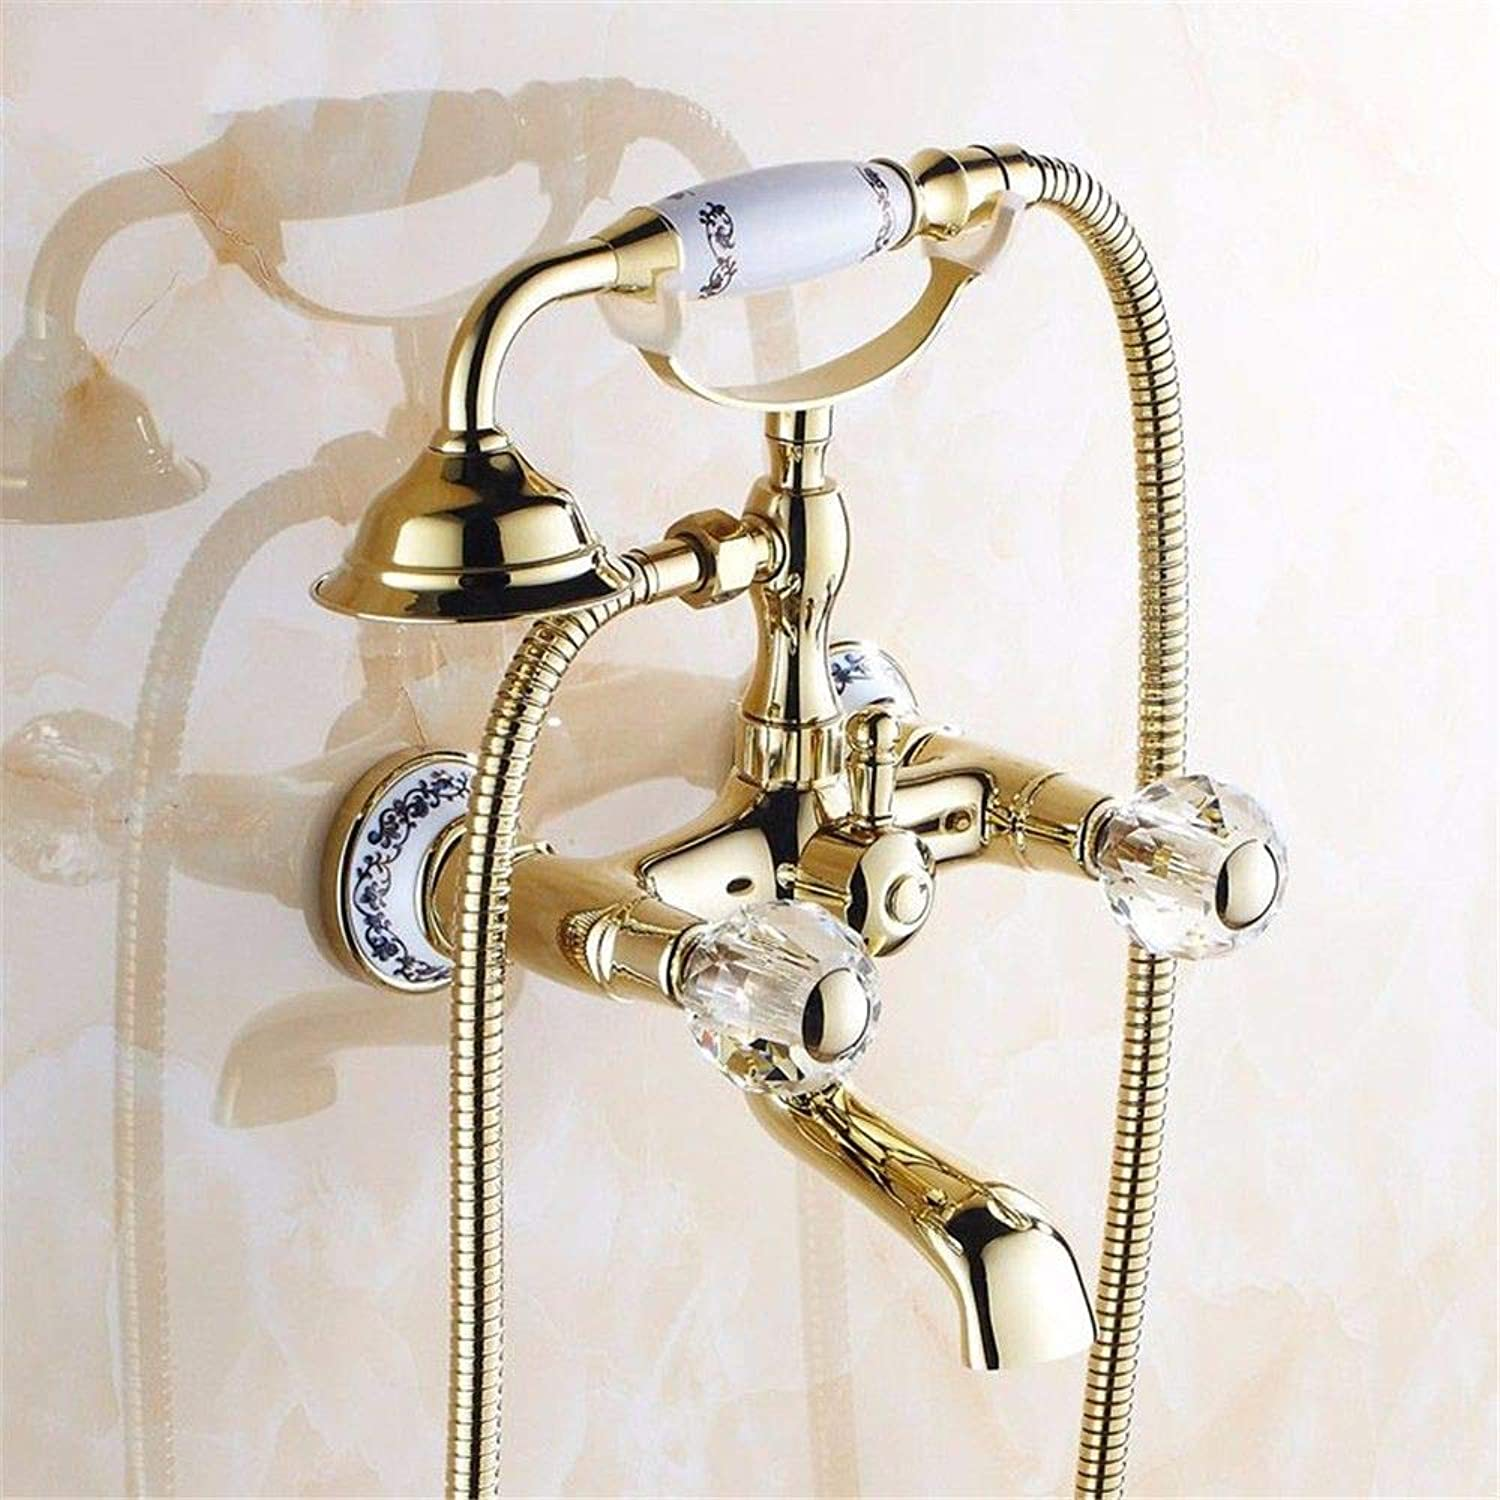 Hlluya Professional Sink Mixer Tap Kitchen Faucet The gold-copper antique Bath Faucet Shower Faucet with the water can be redated without fading Series L